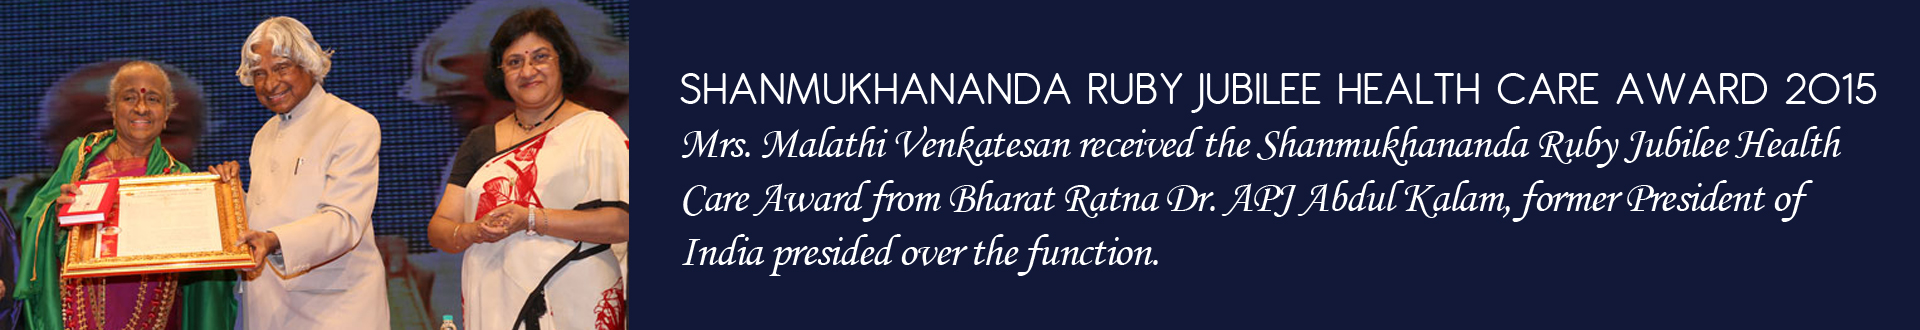 SHANMUKHANANDA RUBY JUBILEE HEALTH CARE AWARD 2015